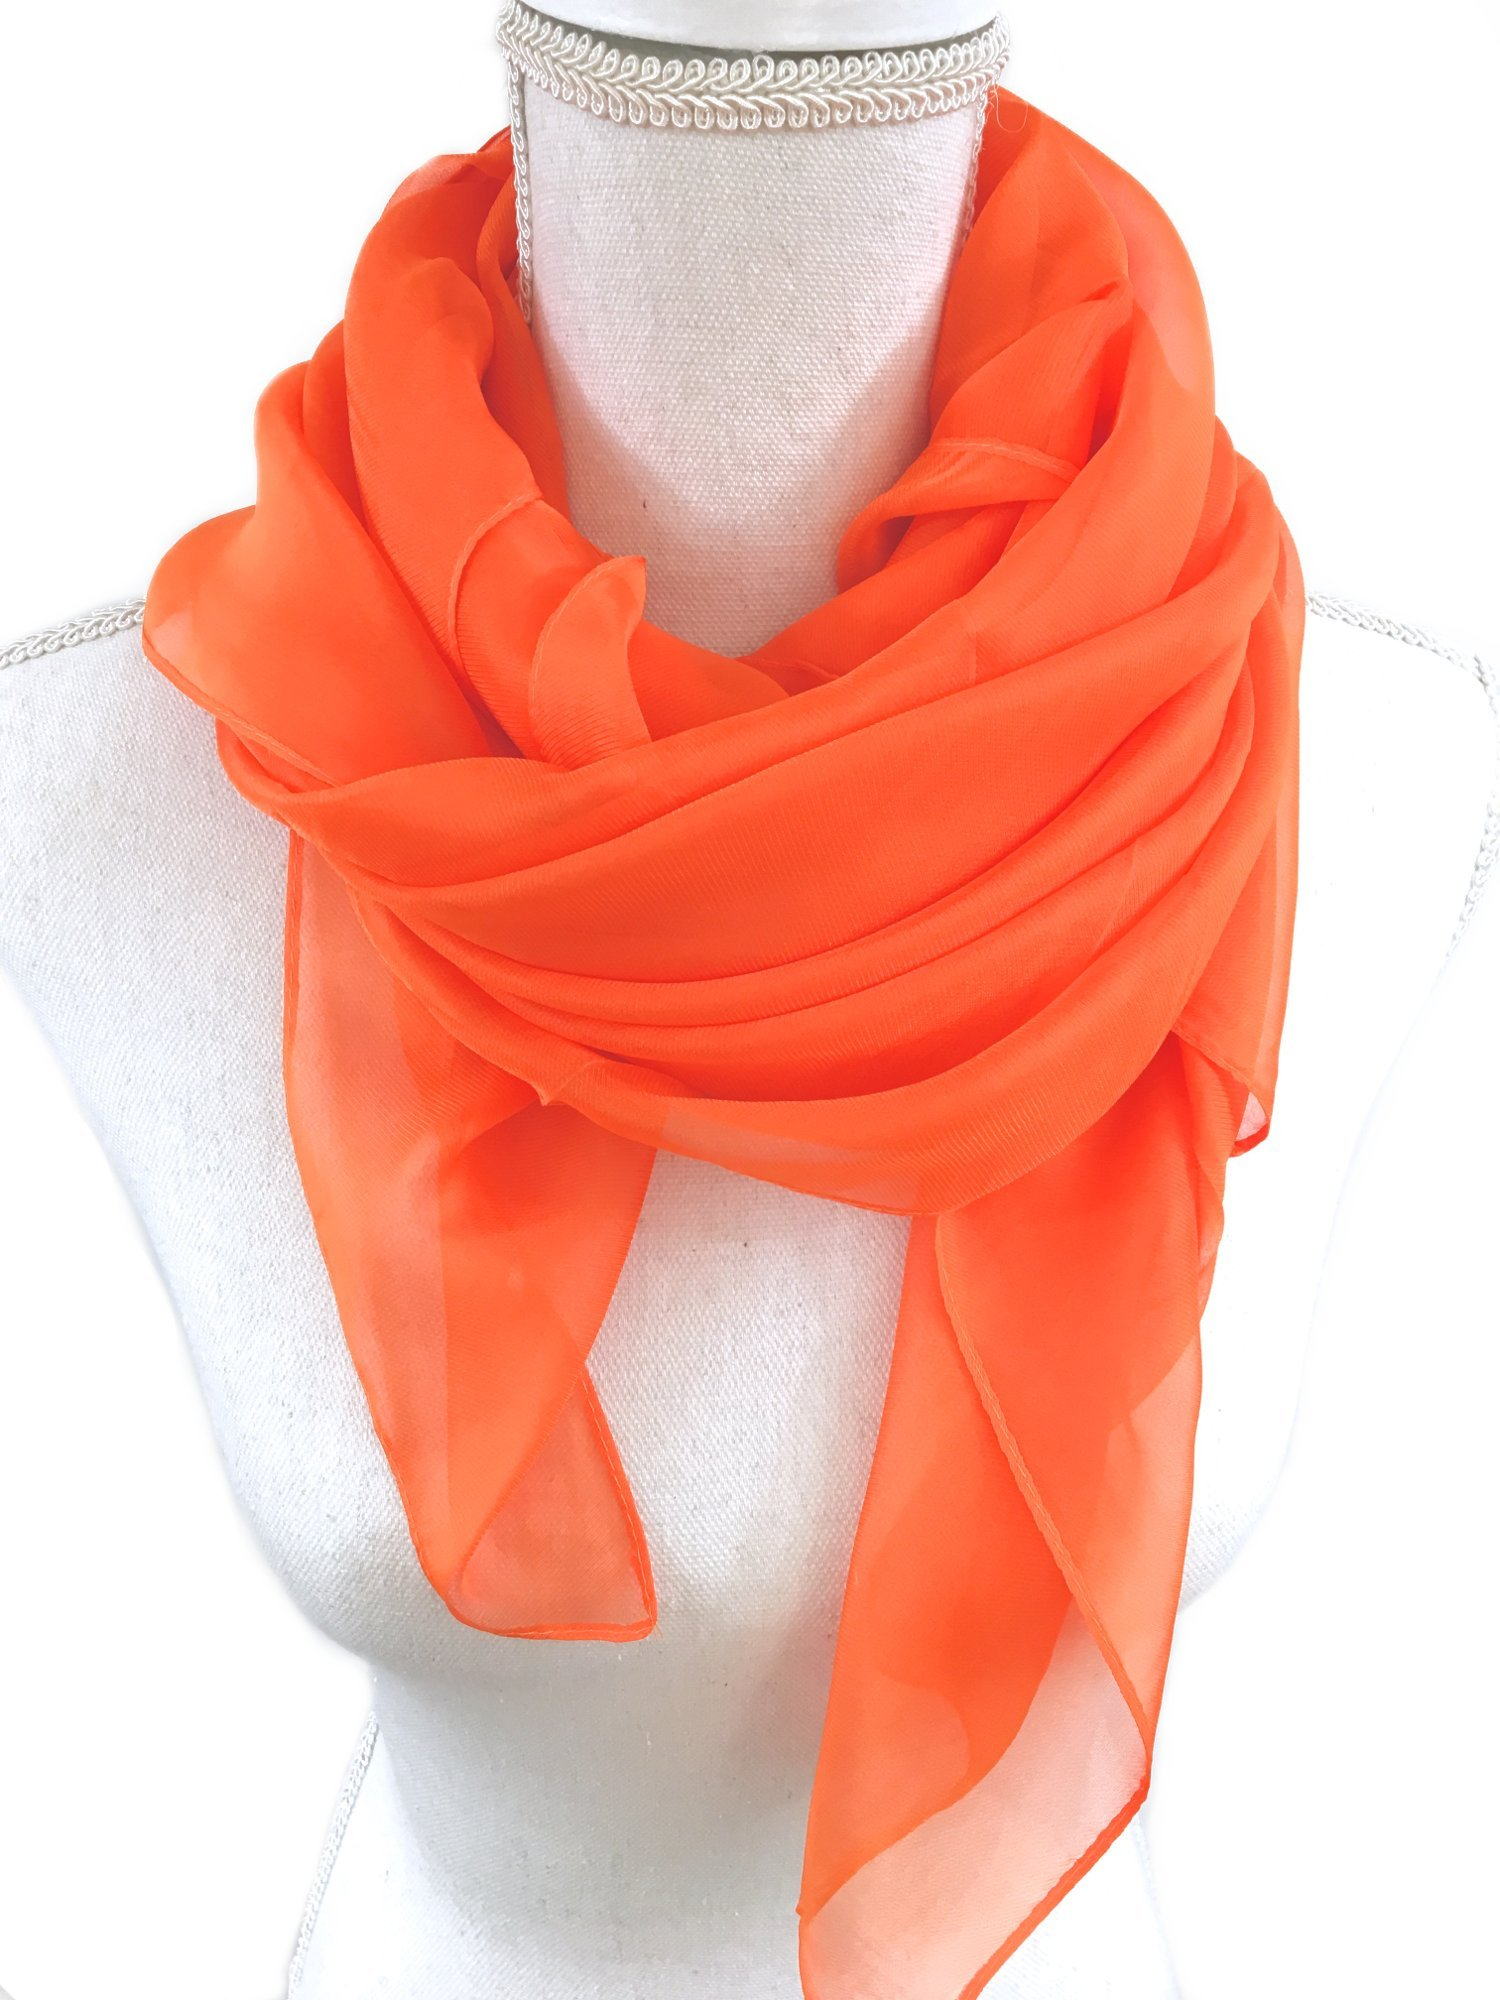 Solid Color Womens Chiffon Scarf, Shawl, Wrap. Beautiful and Simple Silk Feeling Fashion Accessories. (Orange)